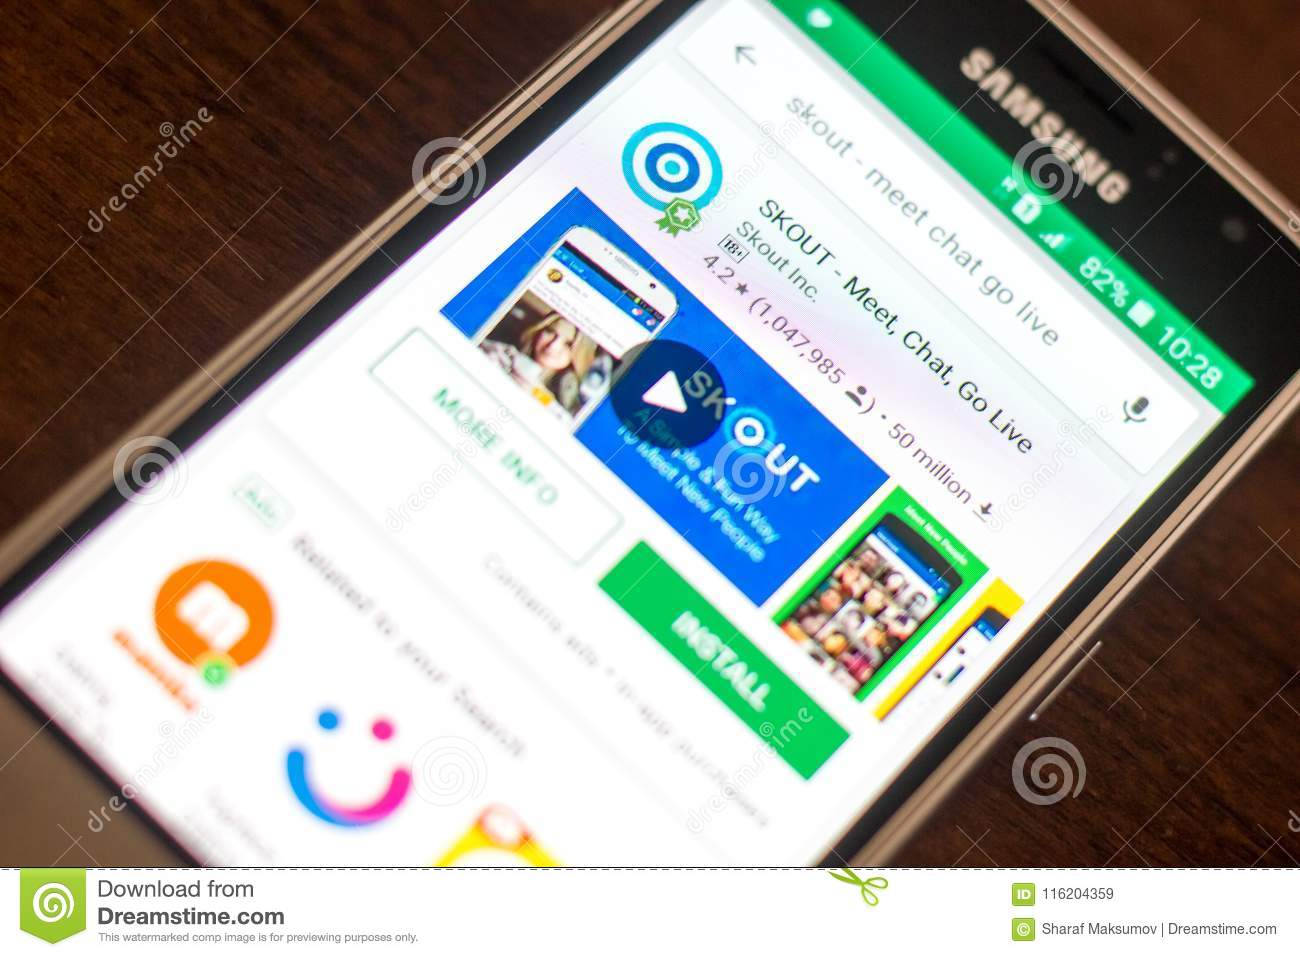 skout app for android